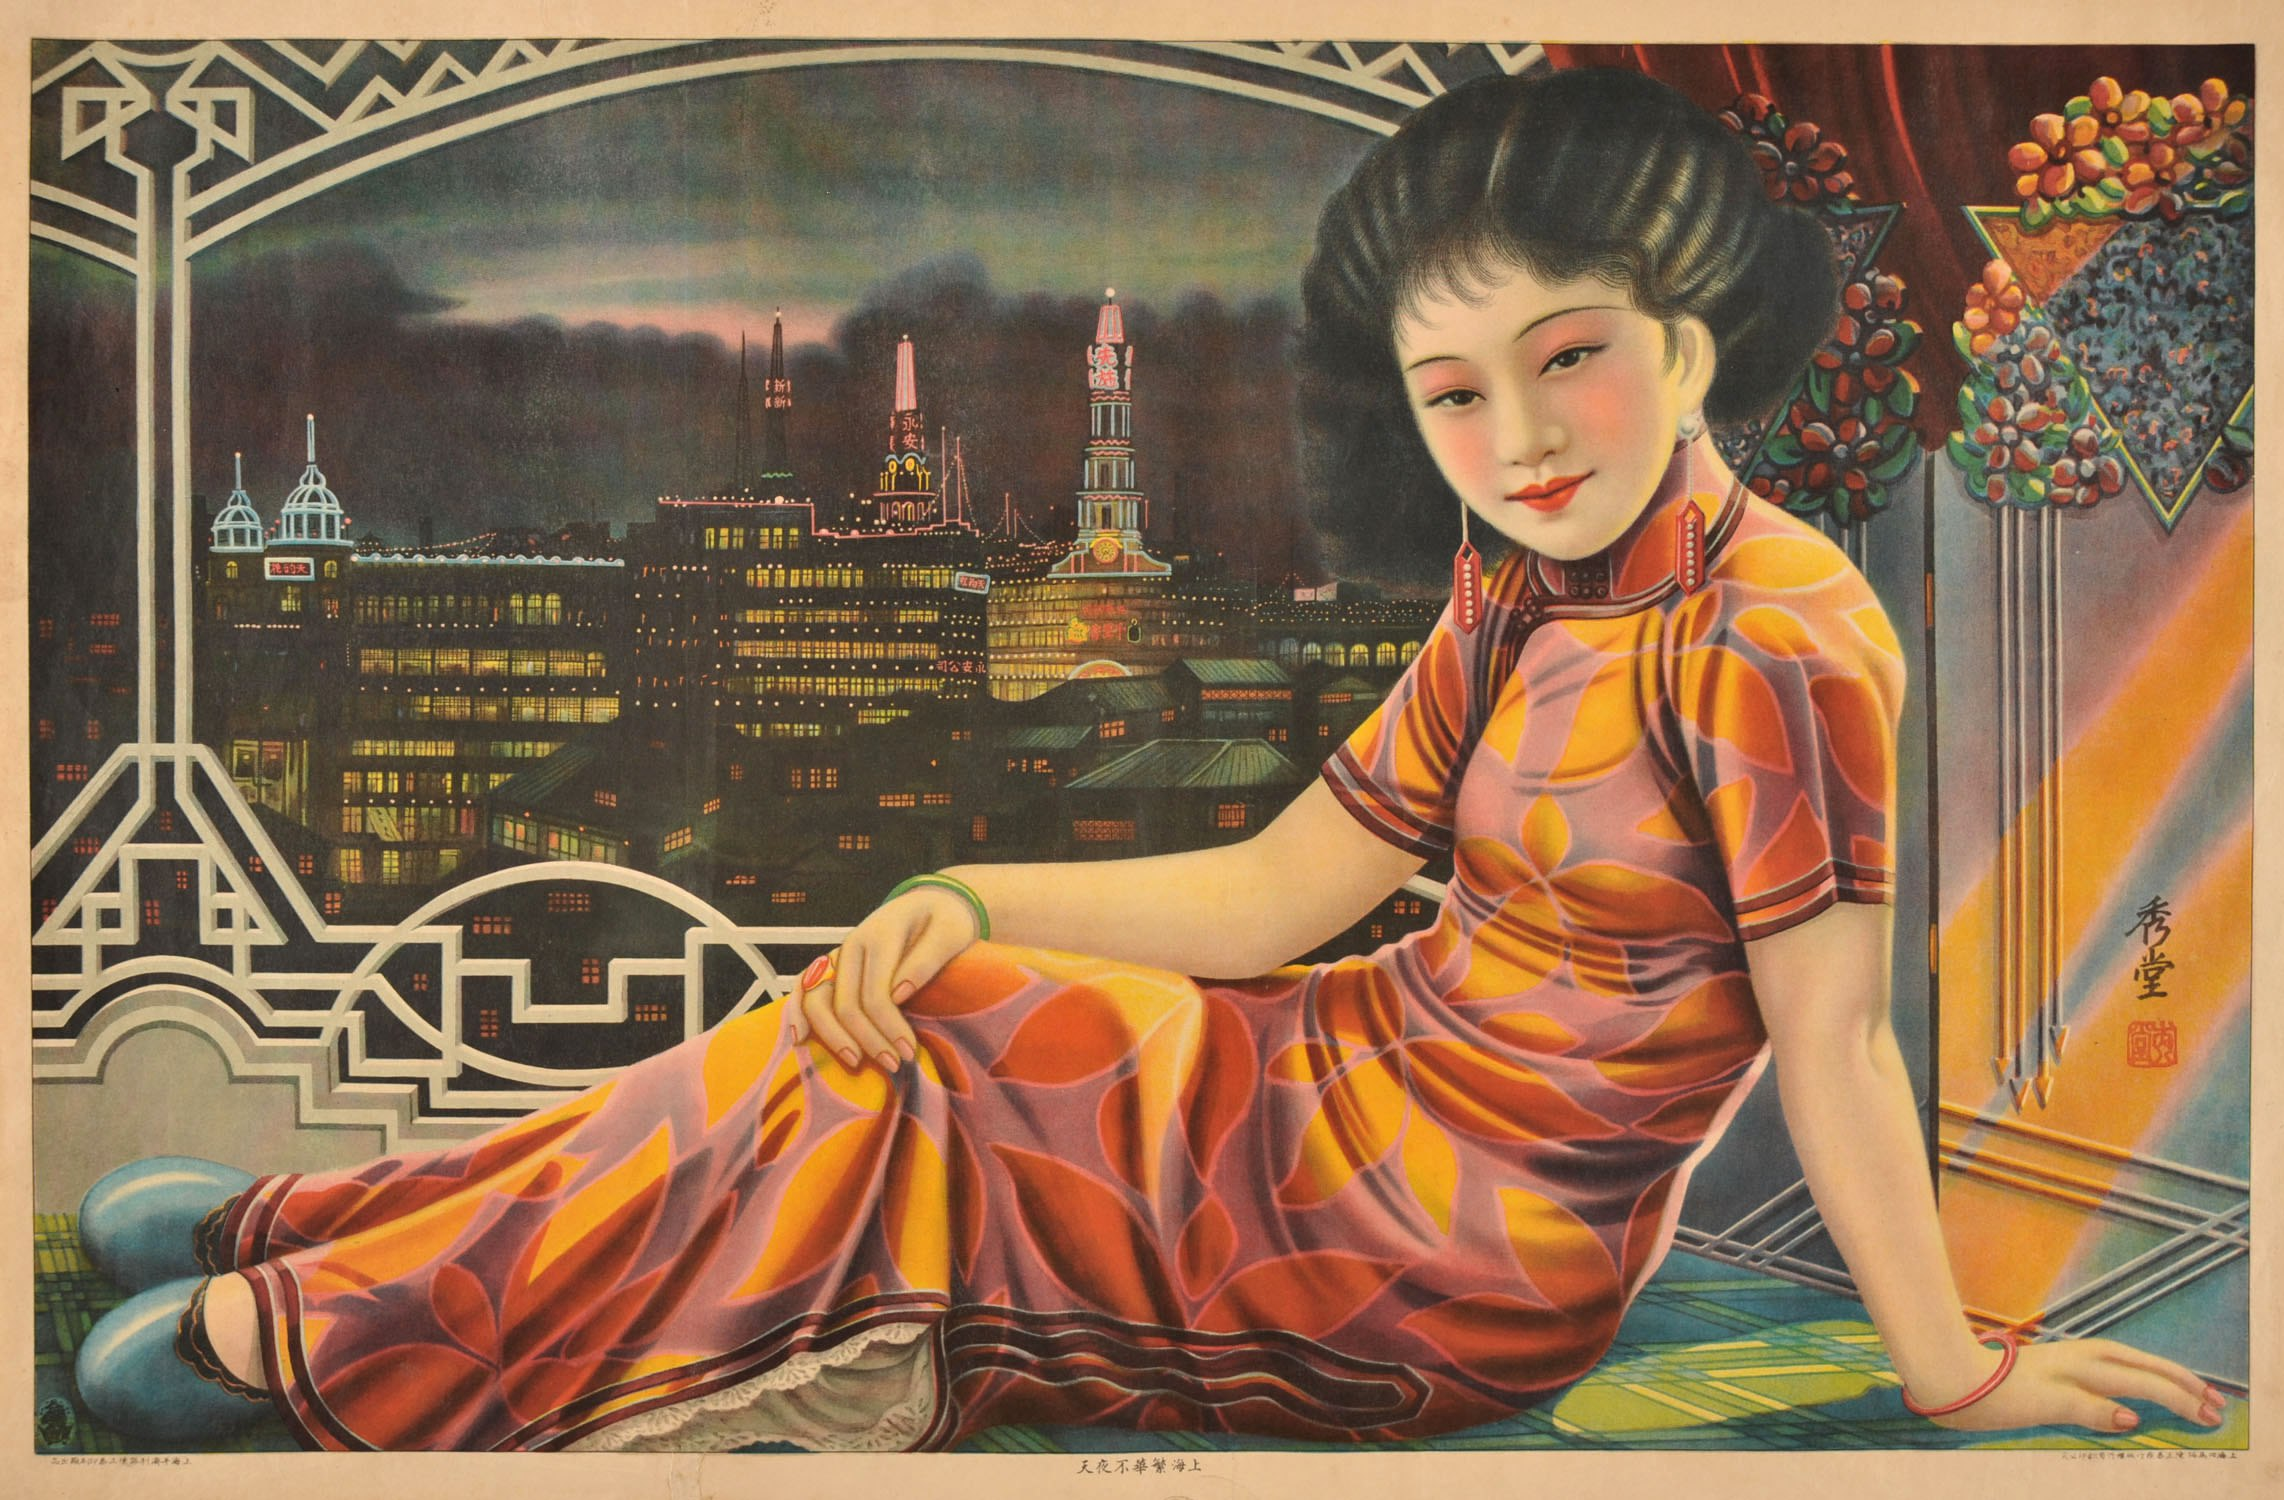 shanghai-a-prosperous-city-that-never-sleeps-yuan-xiutang-1930s